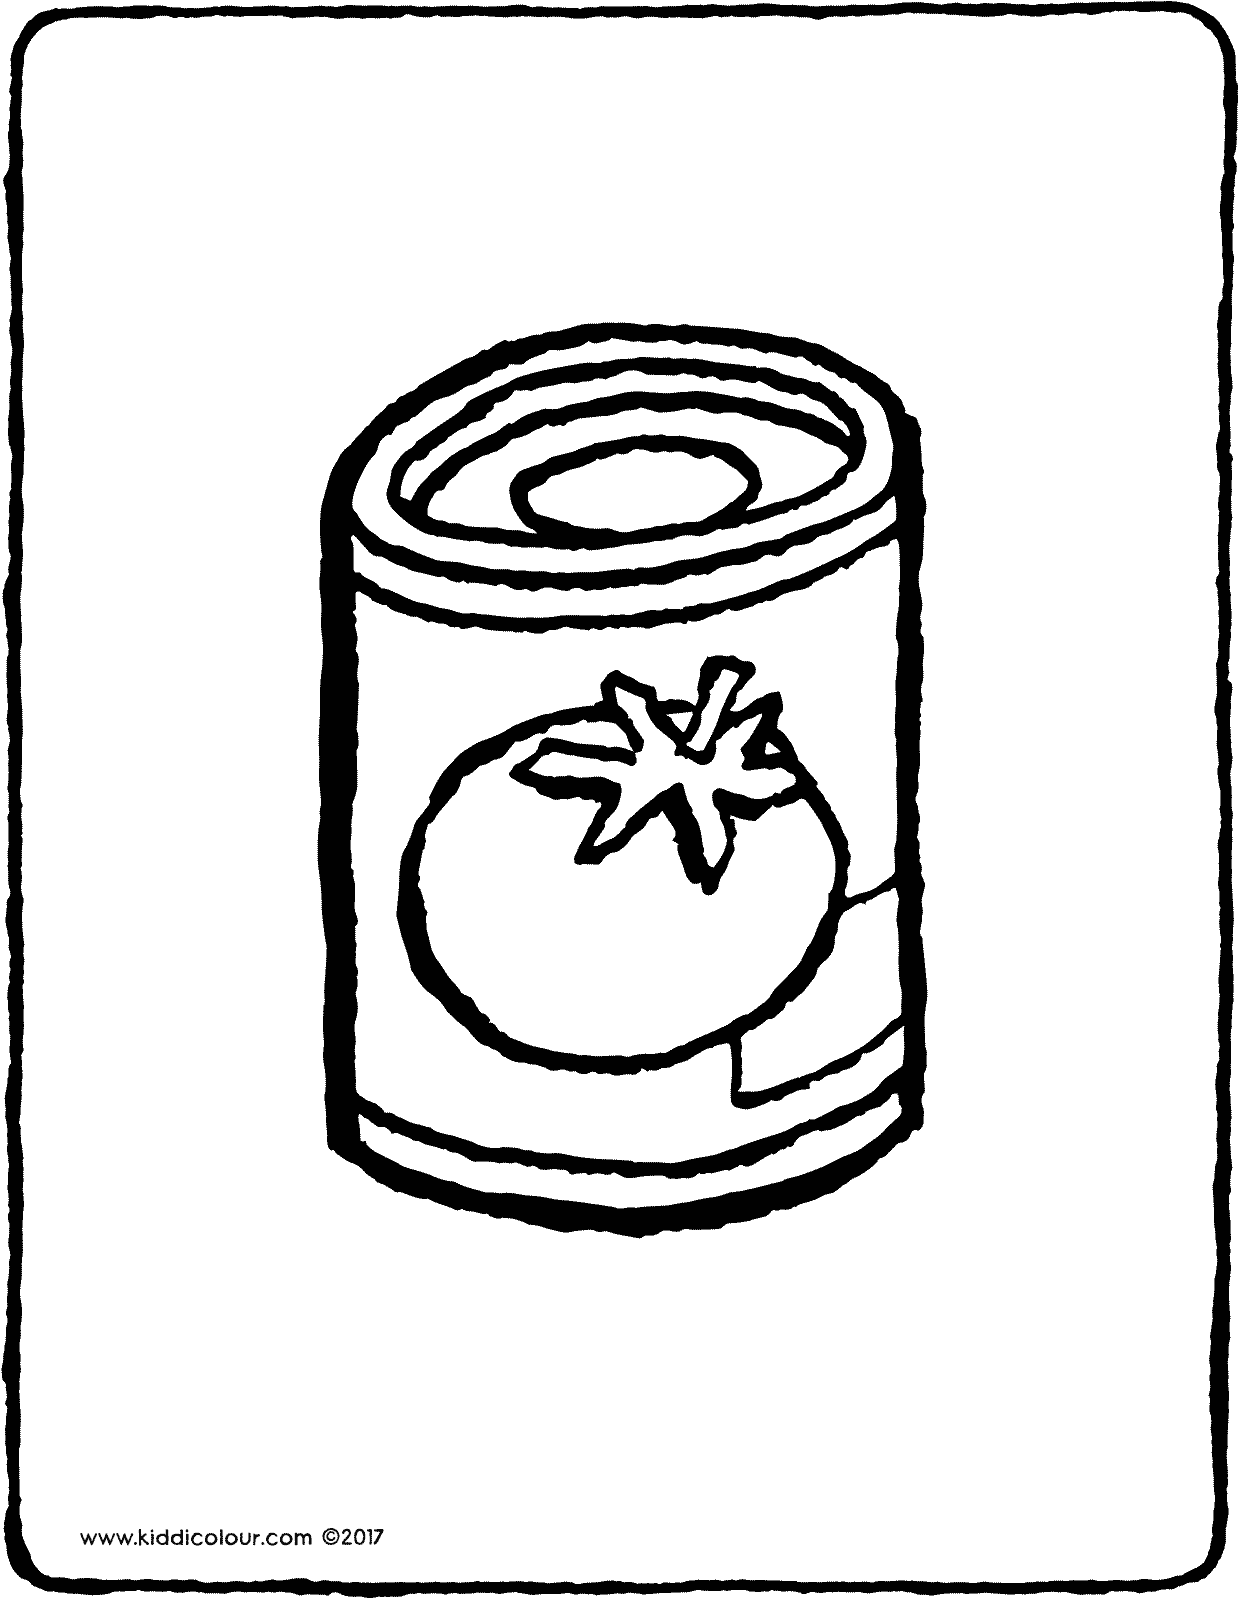 canned tomatoes colouring page drawing picture 01V